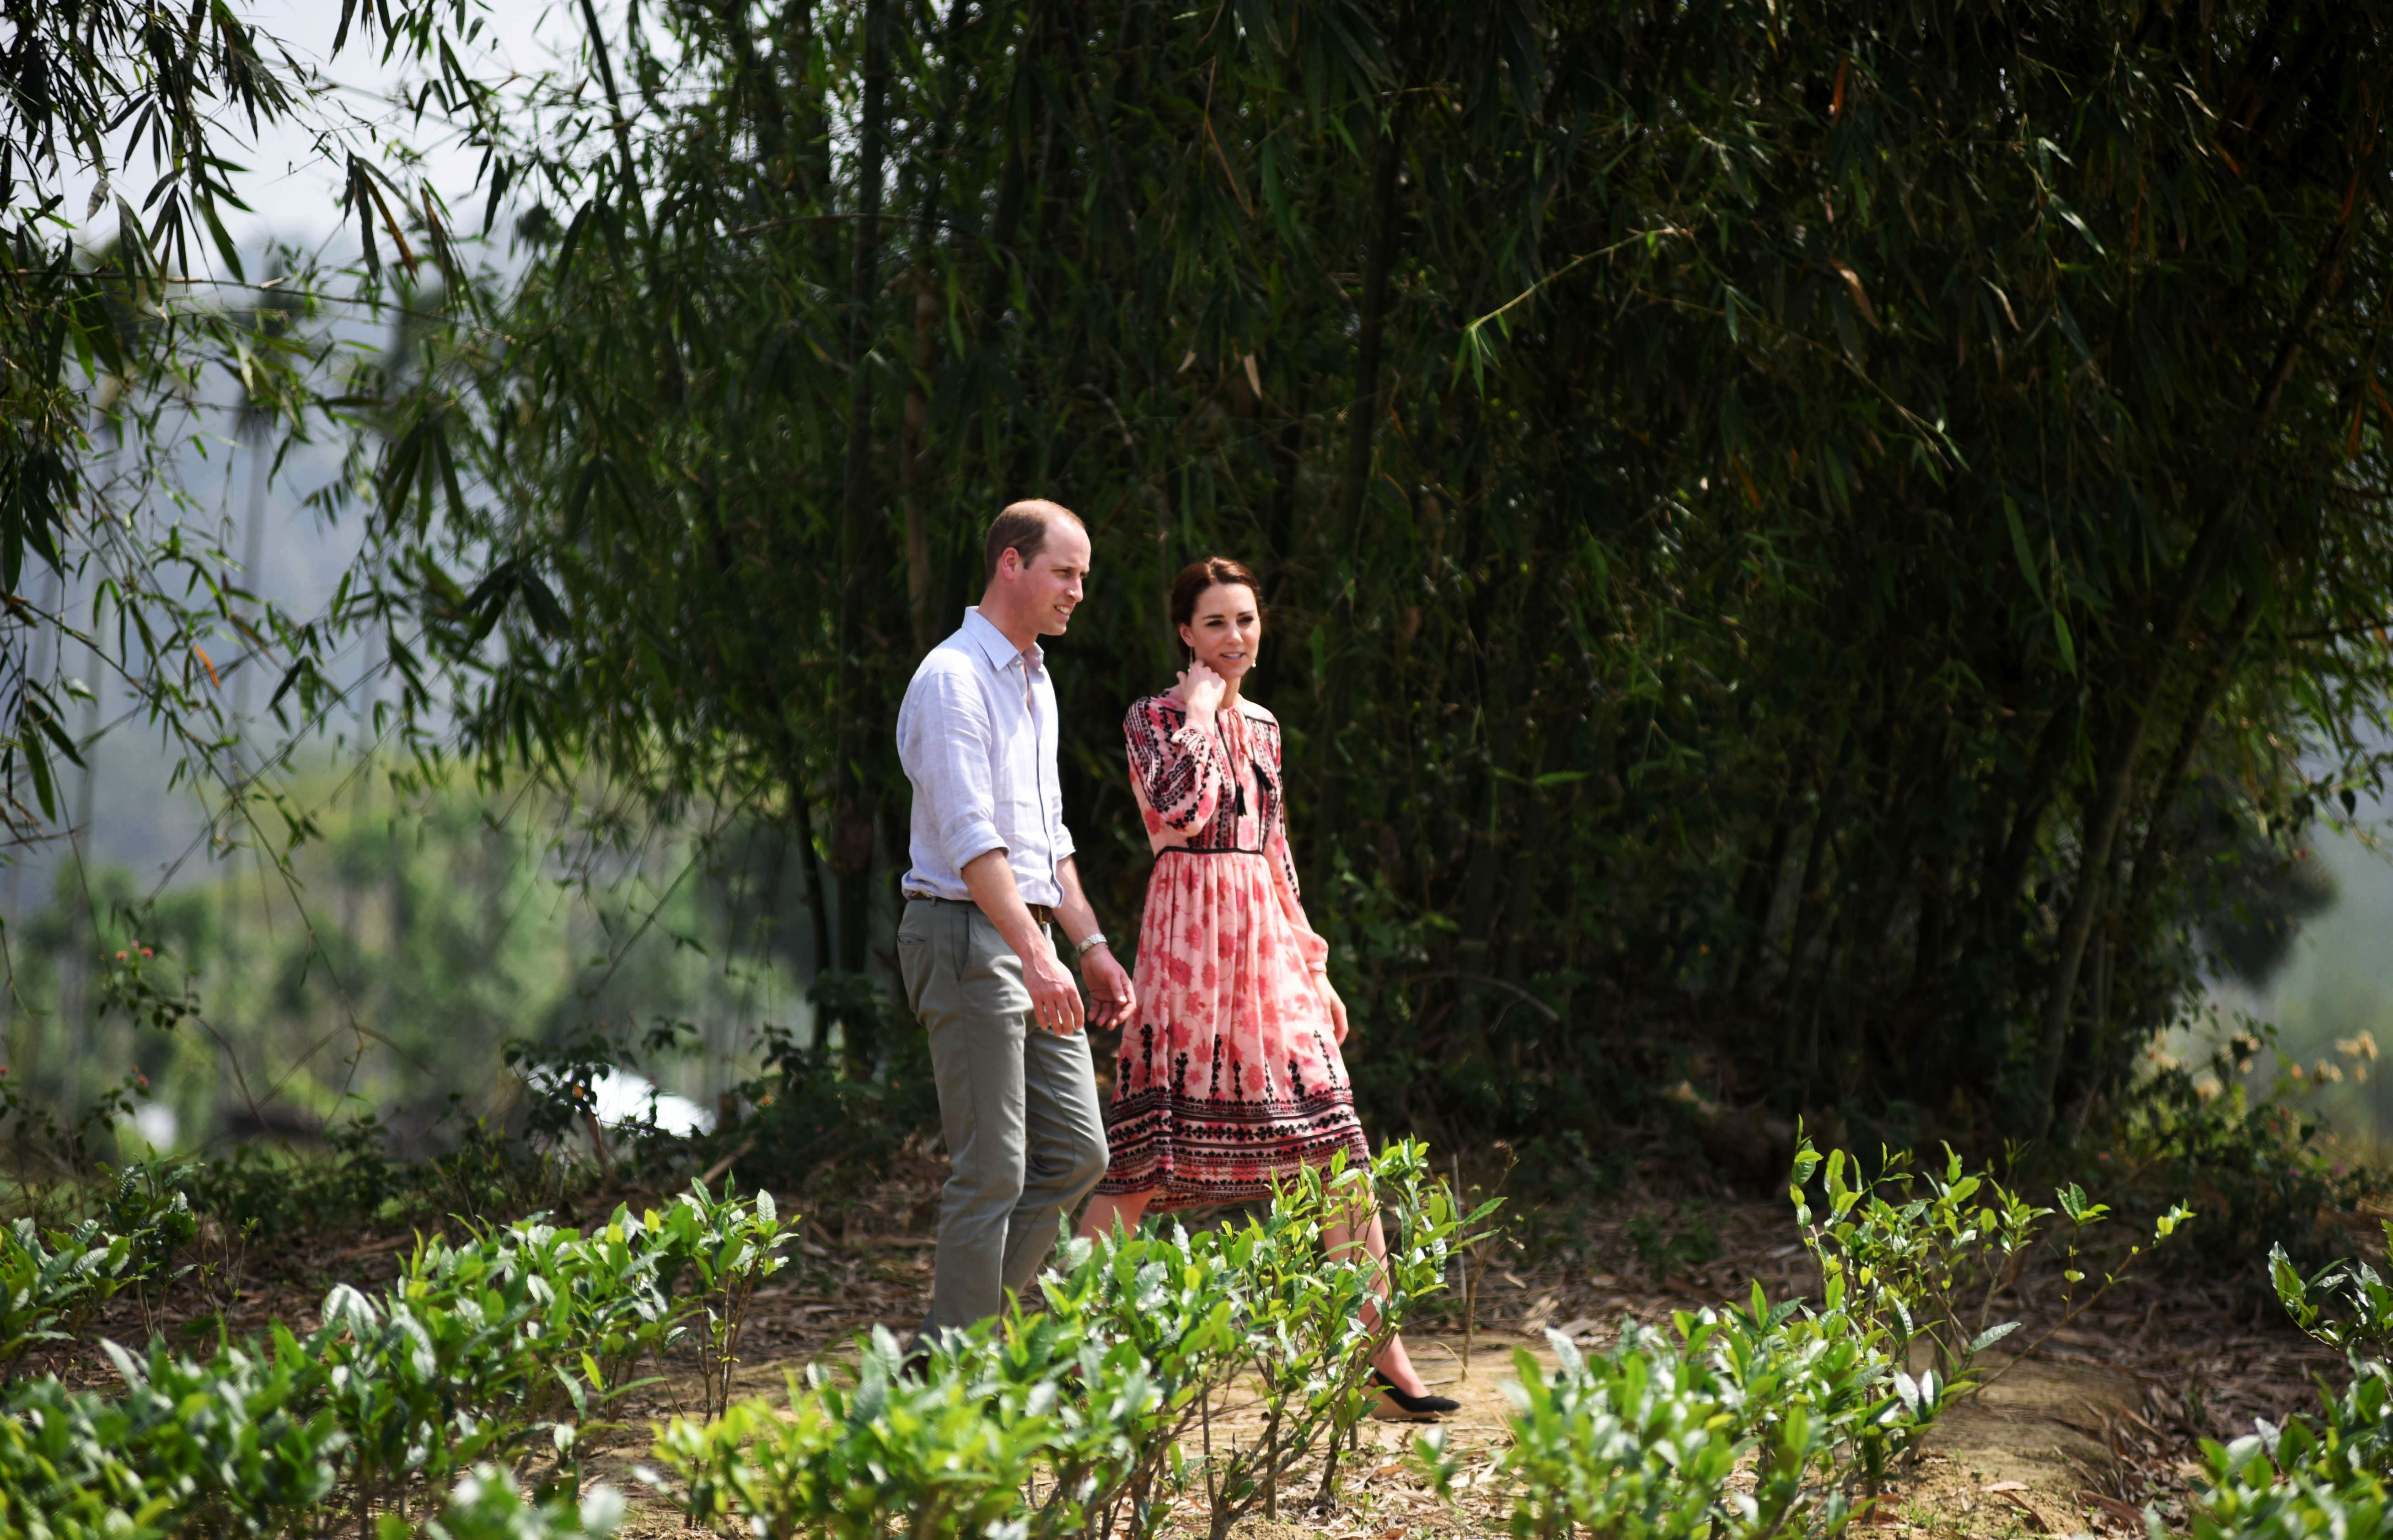 Britain's Prince William, Duke of Cambridge and Catherine, Duchess of Cambridge visit a village tea garden in Kaziranga, India's Assam State, on April 13. (BIJU BORO/AFP/Getty Images)